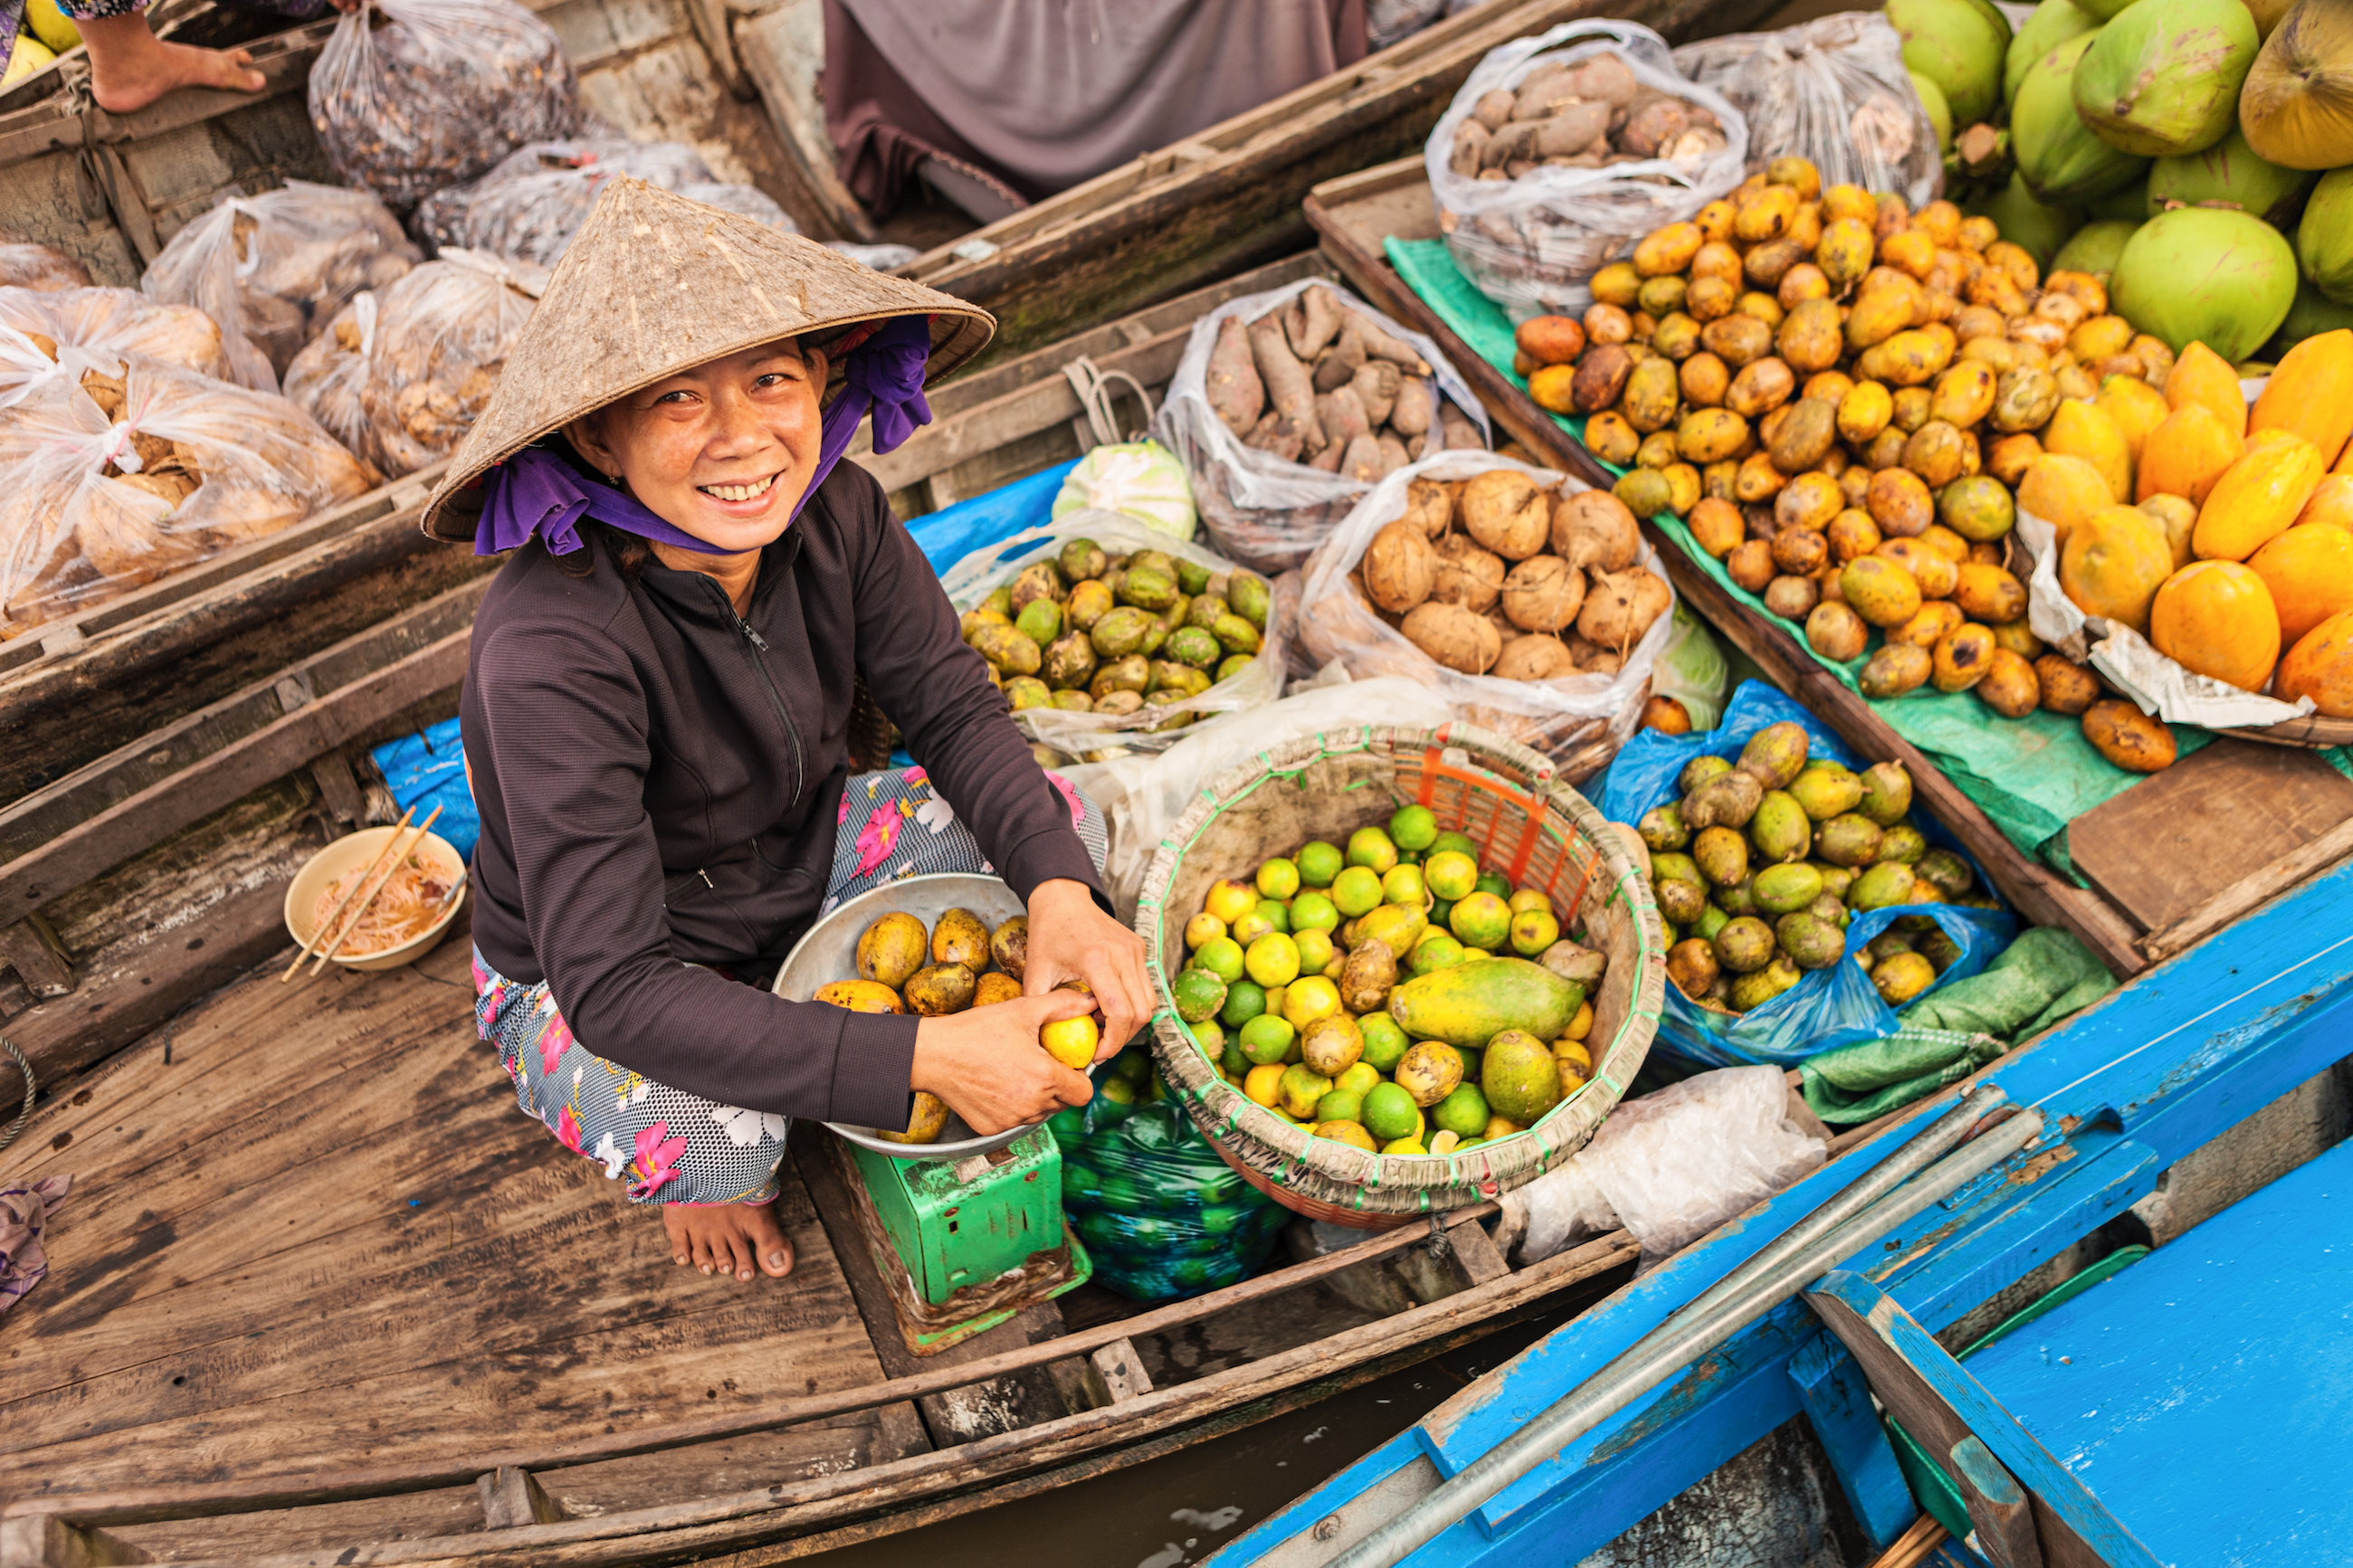 A lady with her boat filled with seasonal fruits